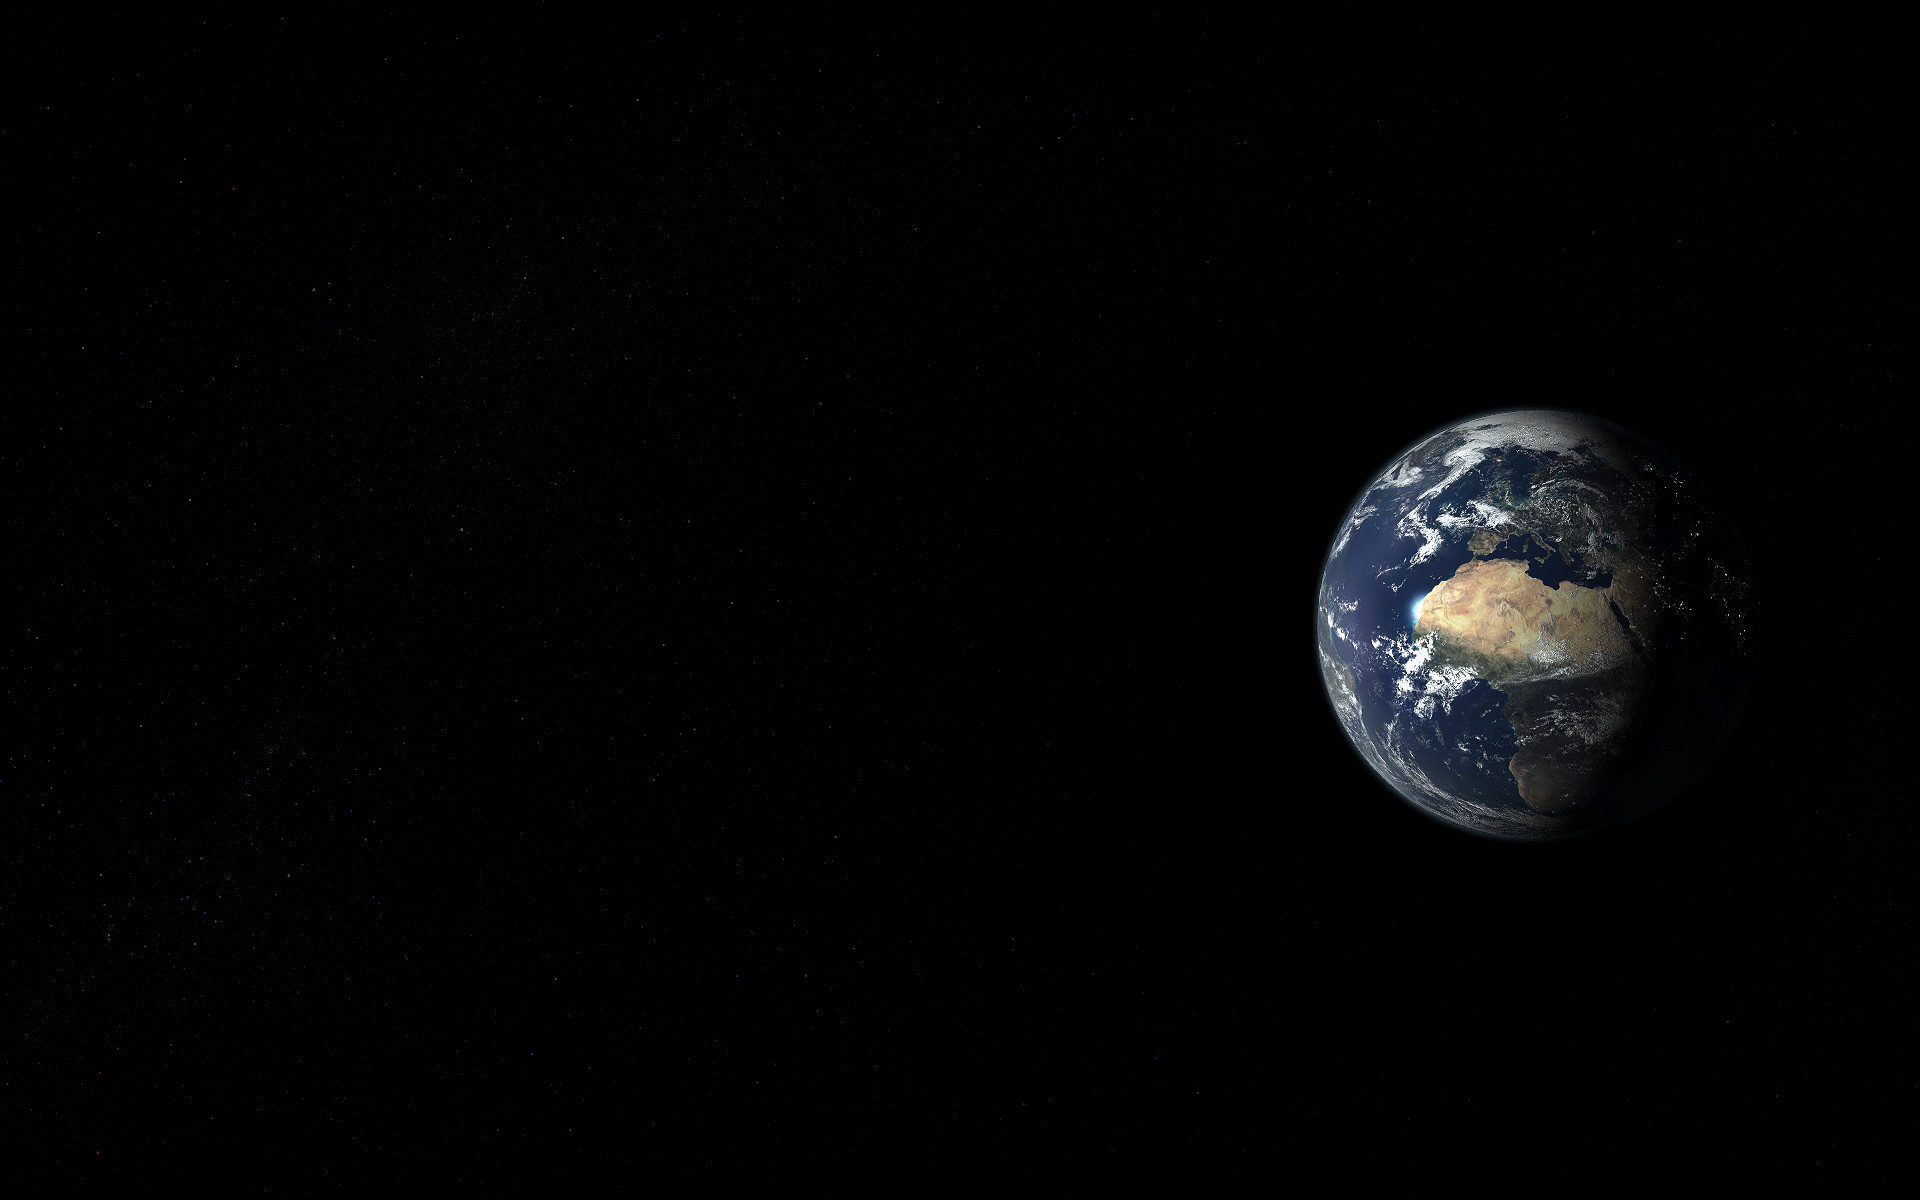 earth from space Wallpaper Backgrounds